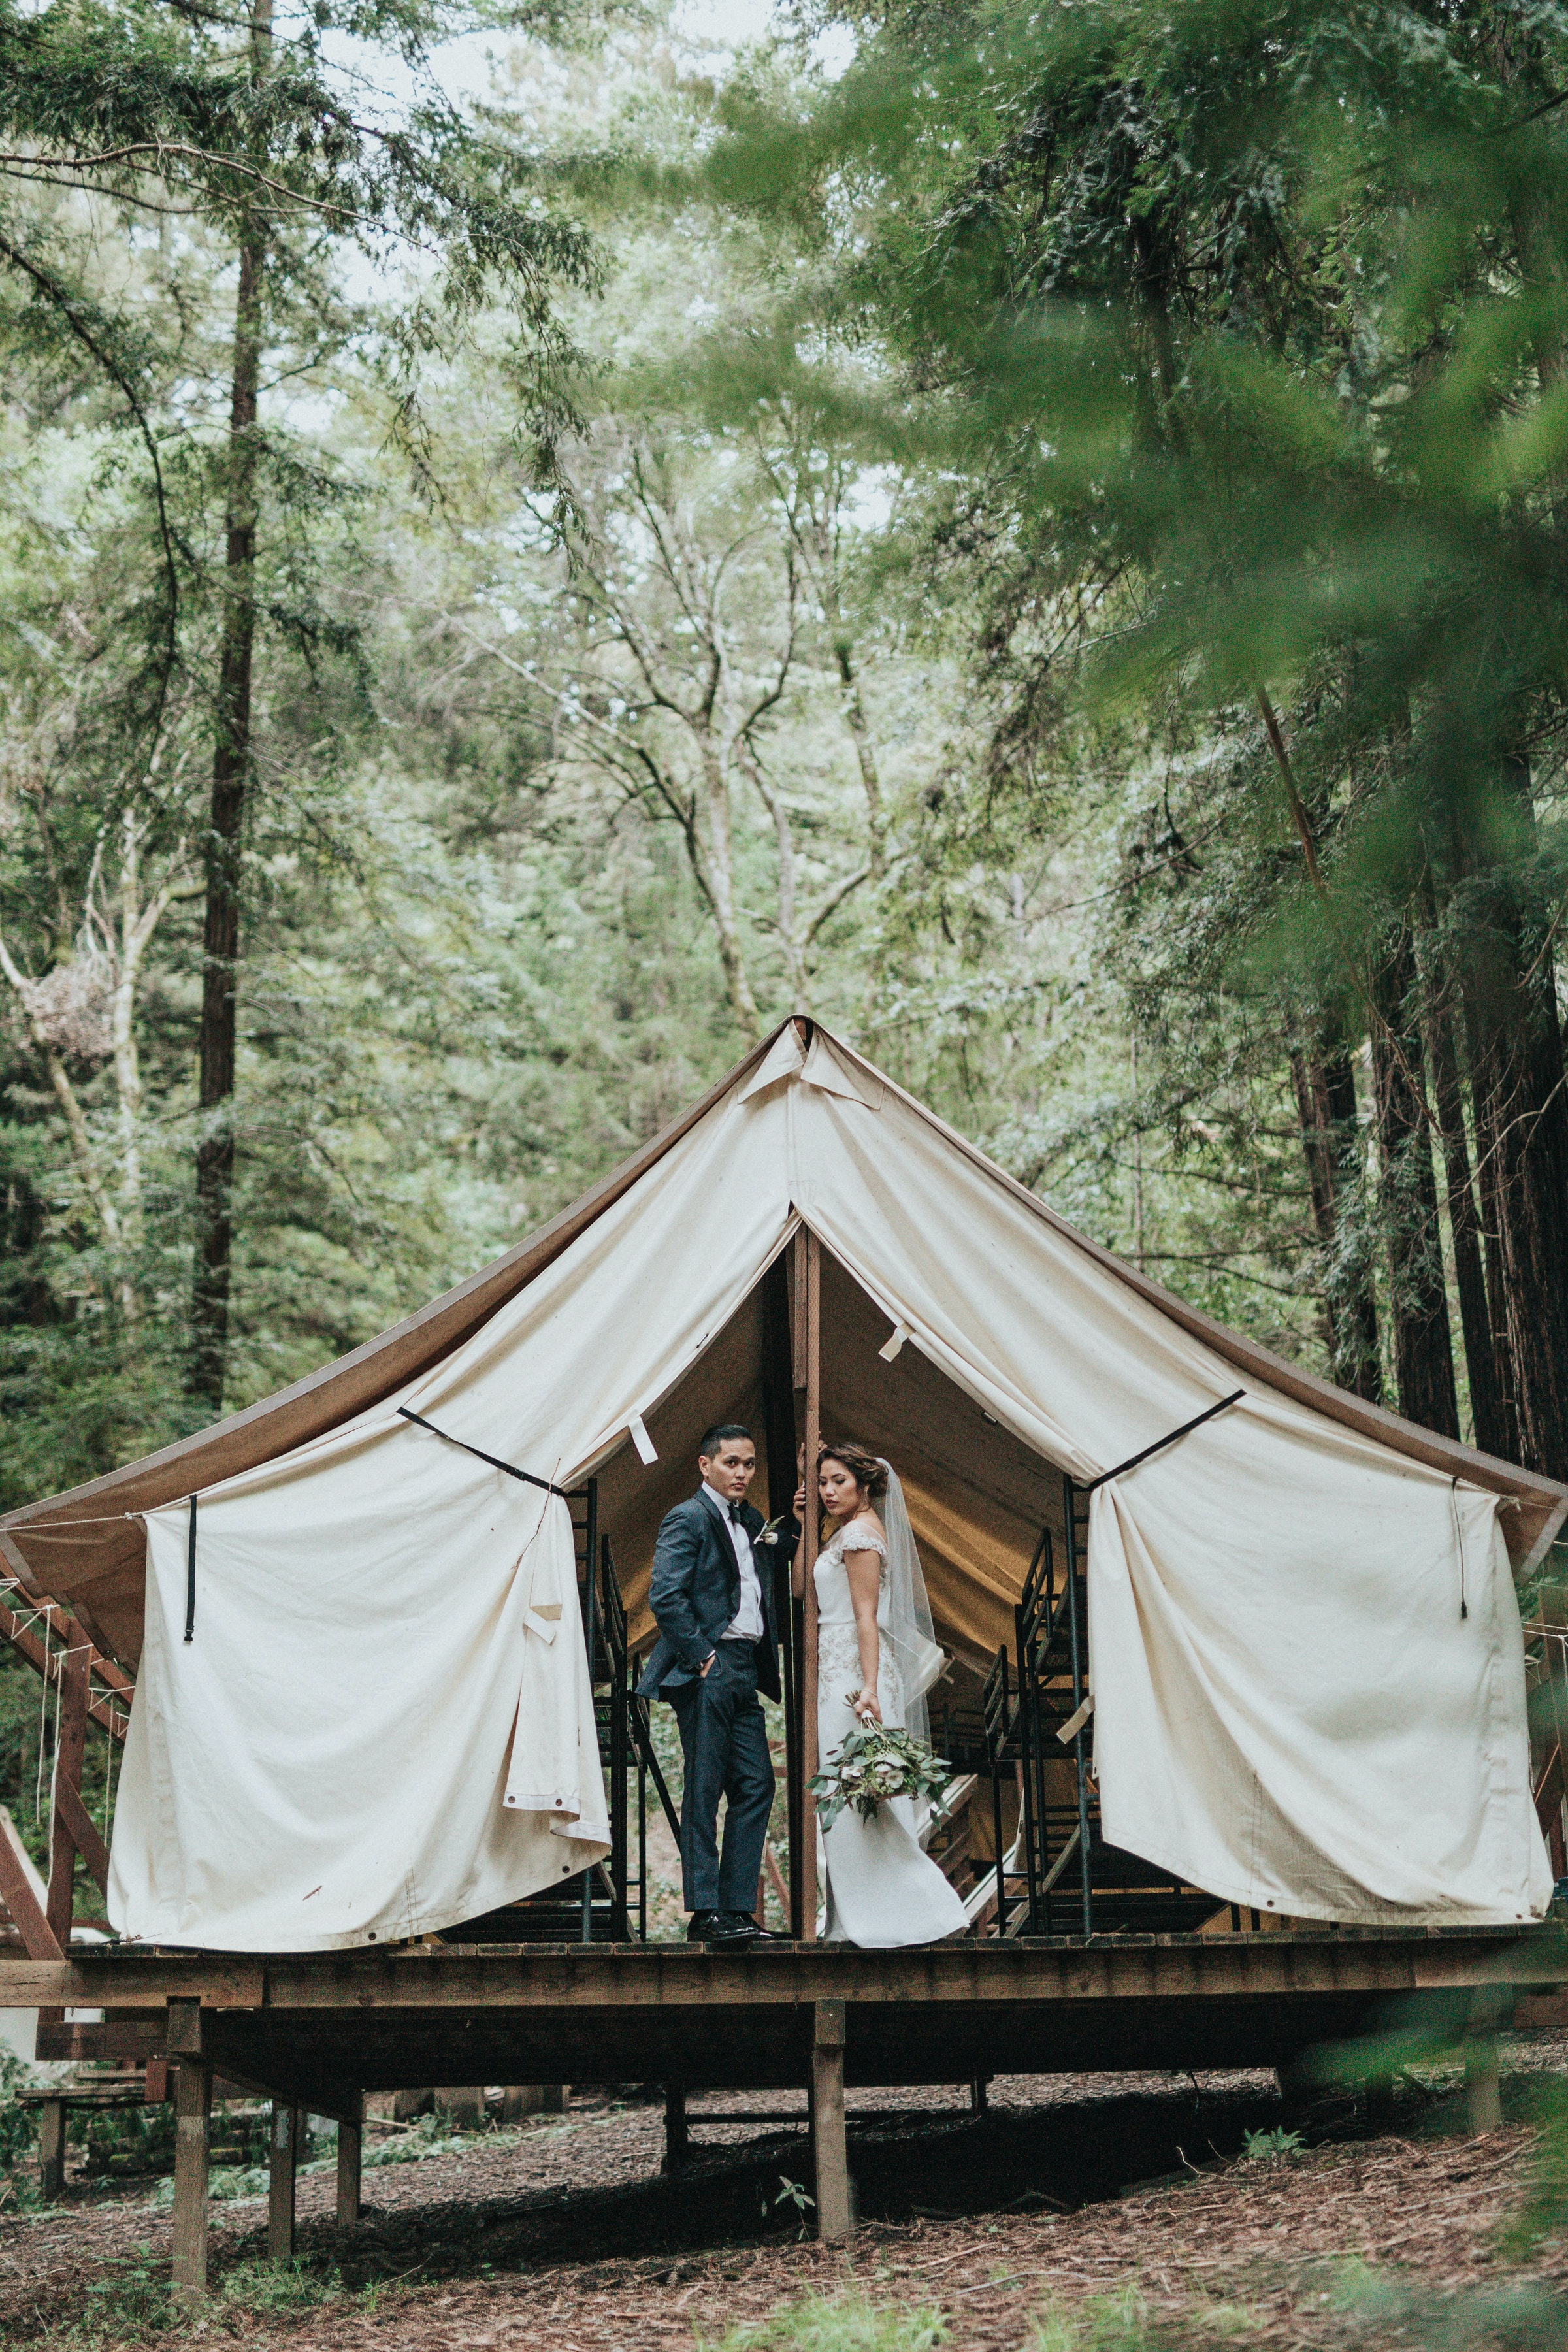 The flaps of a tent in the woods are opened to reveal a married couple in wedding wear